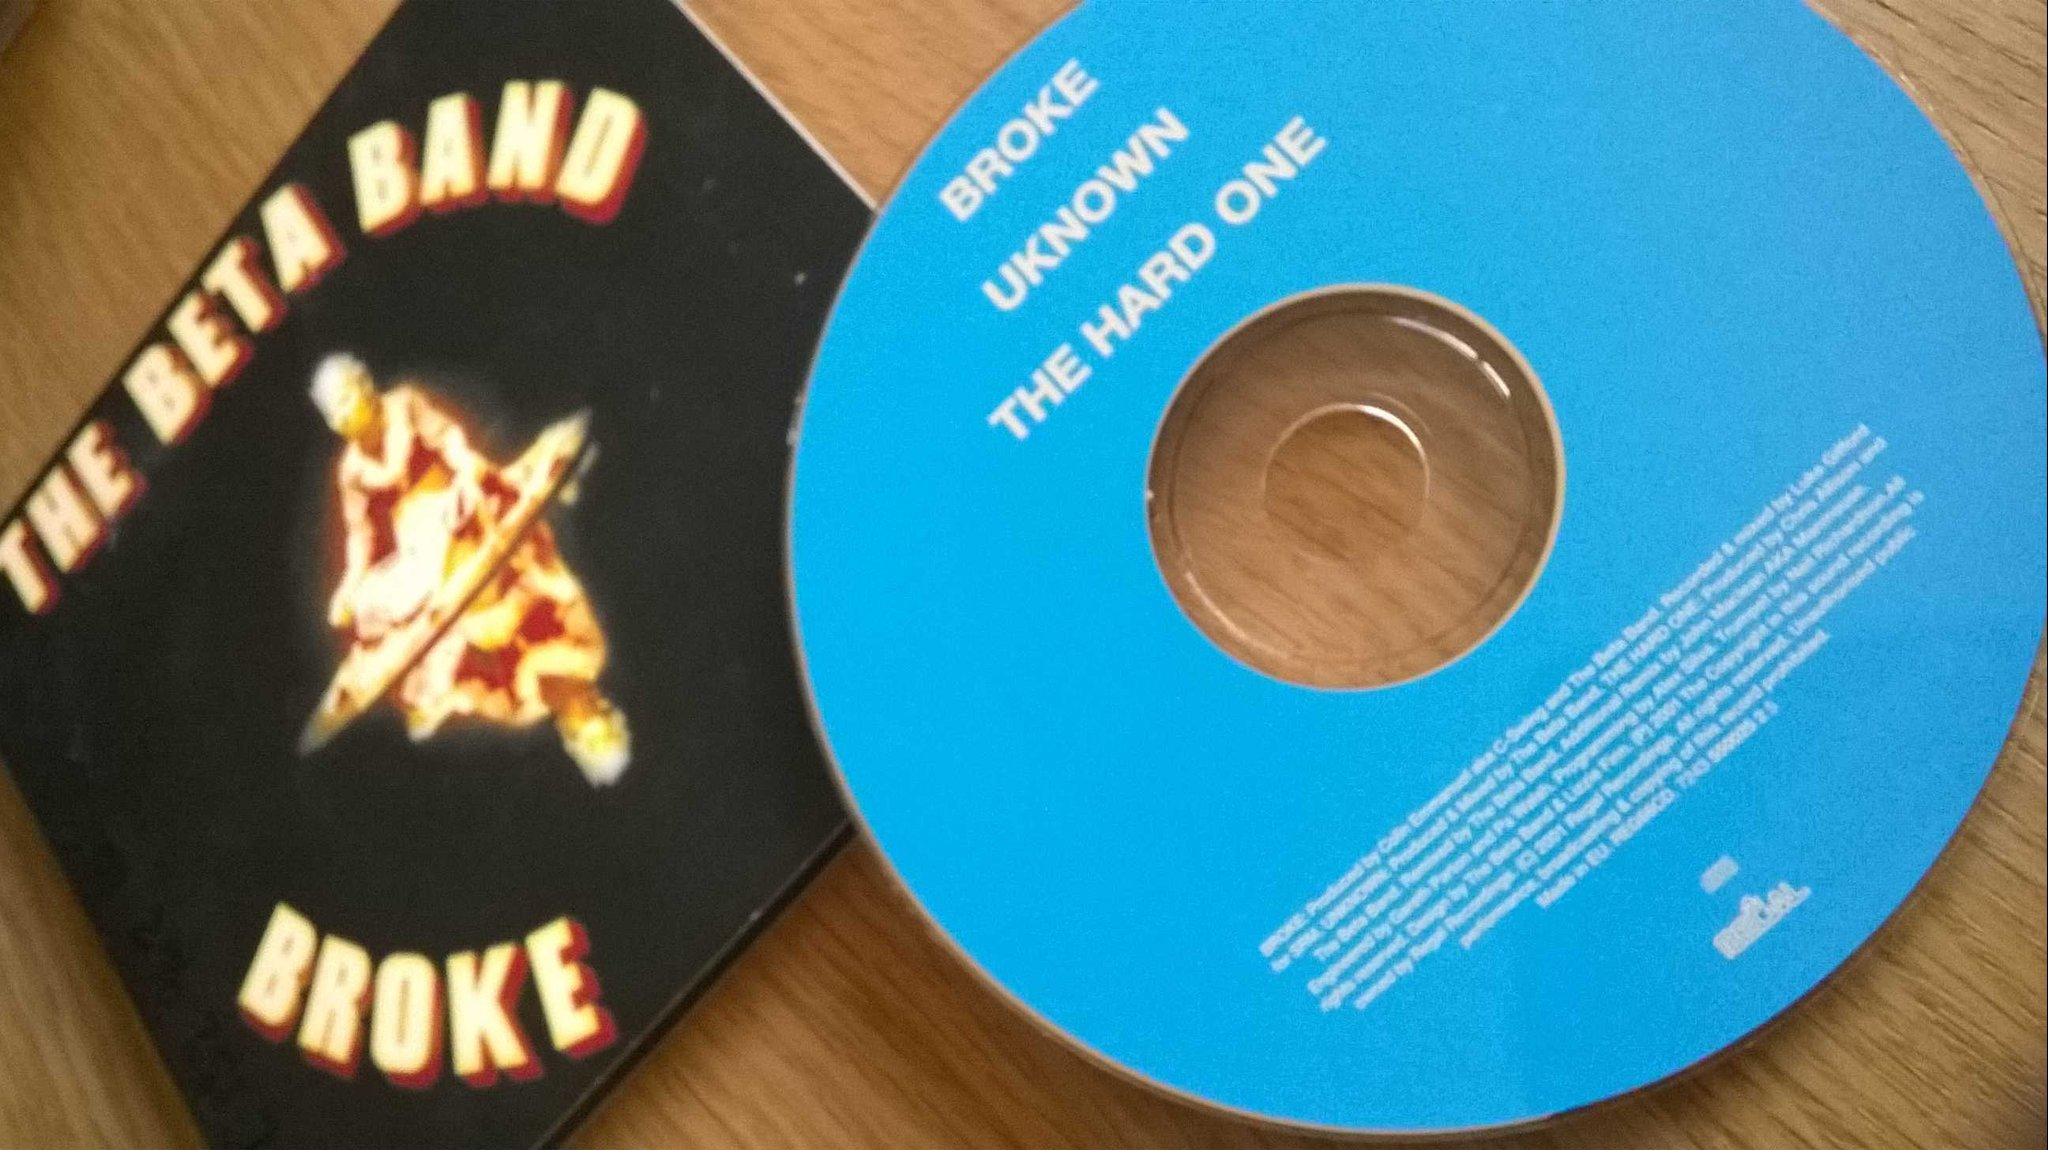 The Beta Band - Broke, CD, Single